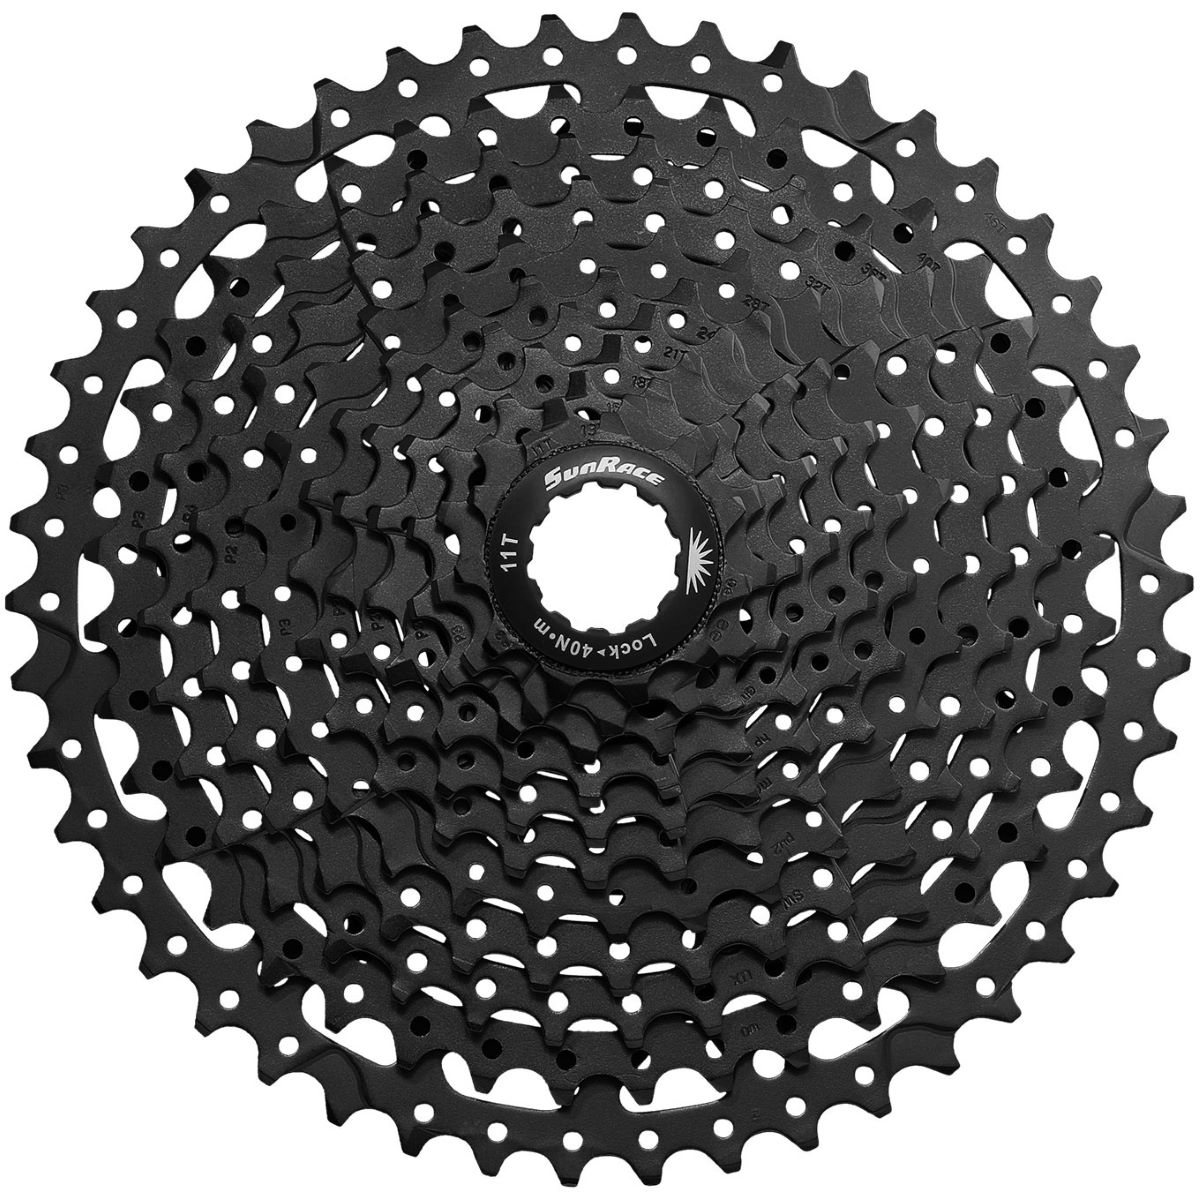 SunRace SunRace MS8 Wide-Ratio Cassette (11 Speed)   Cassettes